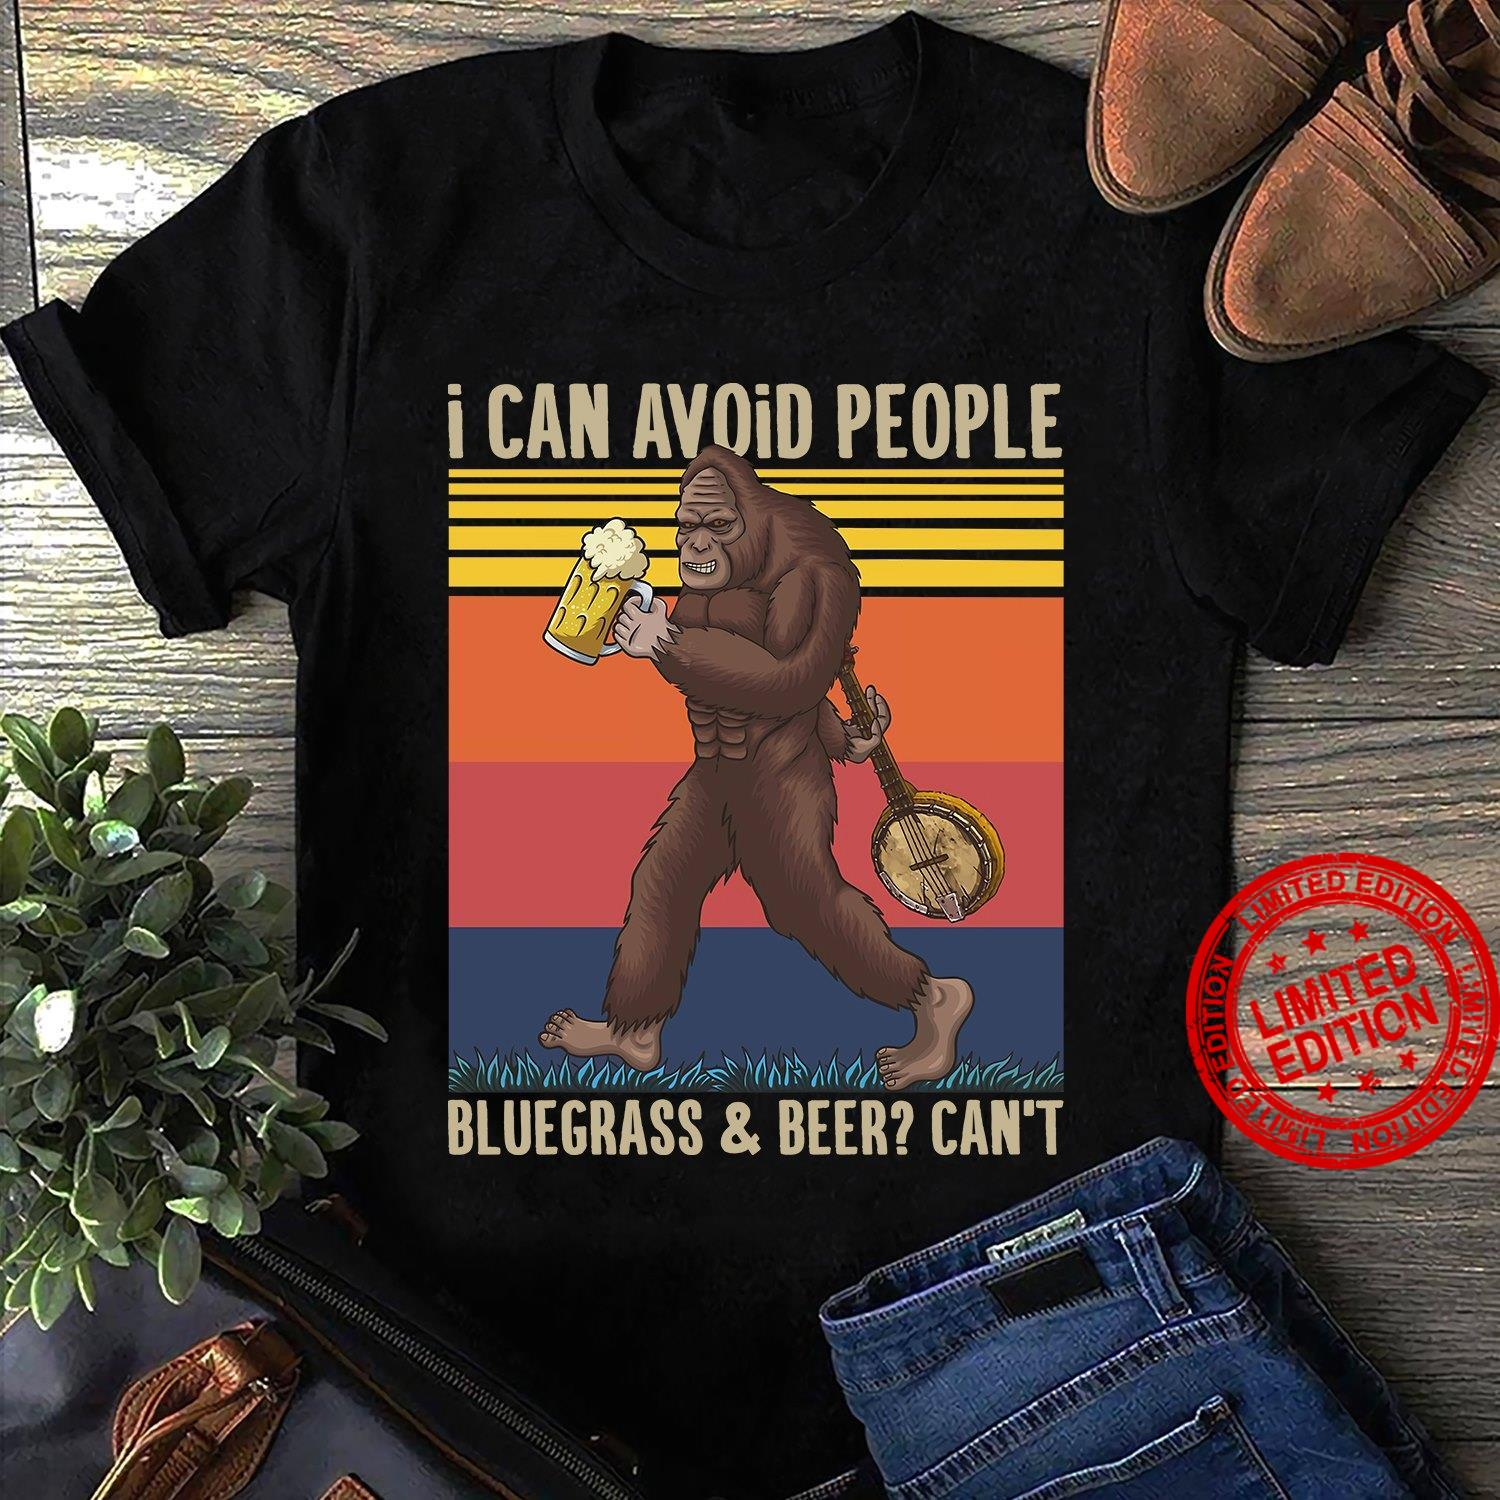 I Can Avoid People Bluegrass & Beer Can't Shirt